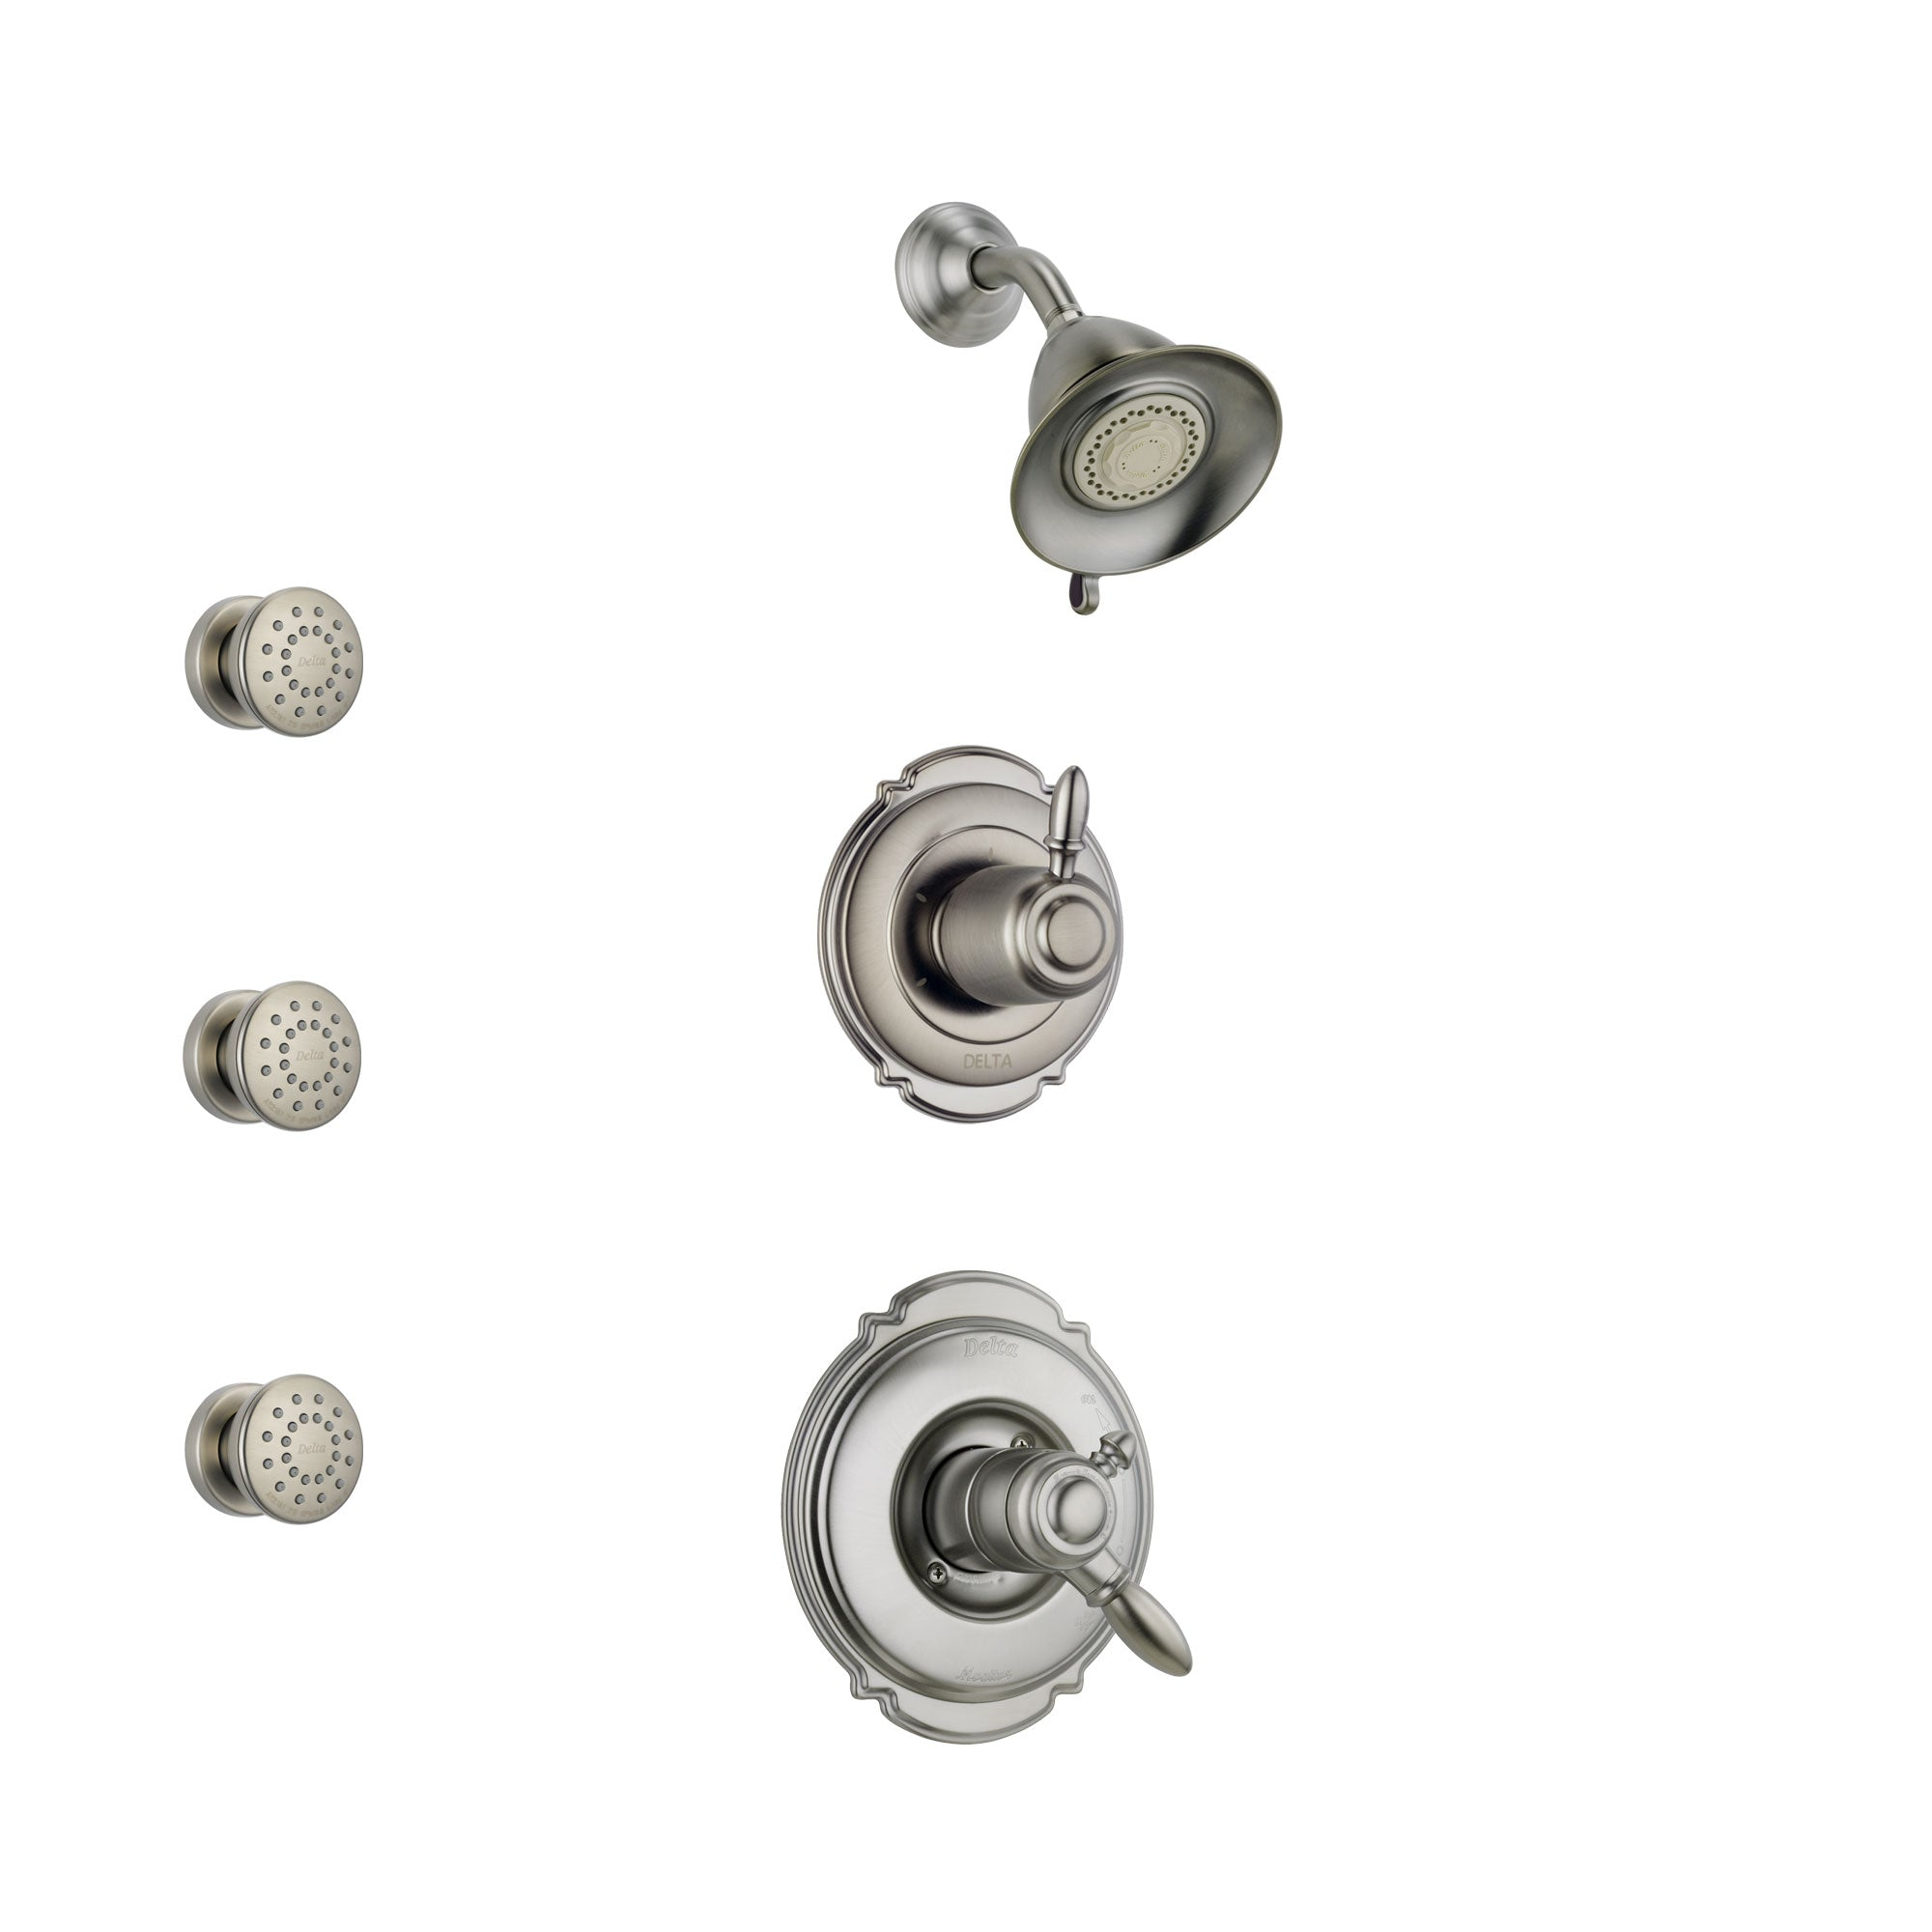 Delta Victorian Stainless Steel Finish Shower System with Dual Control Handle, 3-Setting Diverter, Showerhead, and 3 Body Sprays SS172551SS1